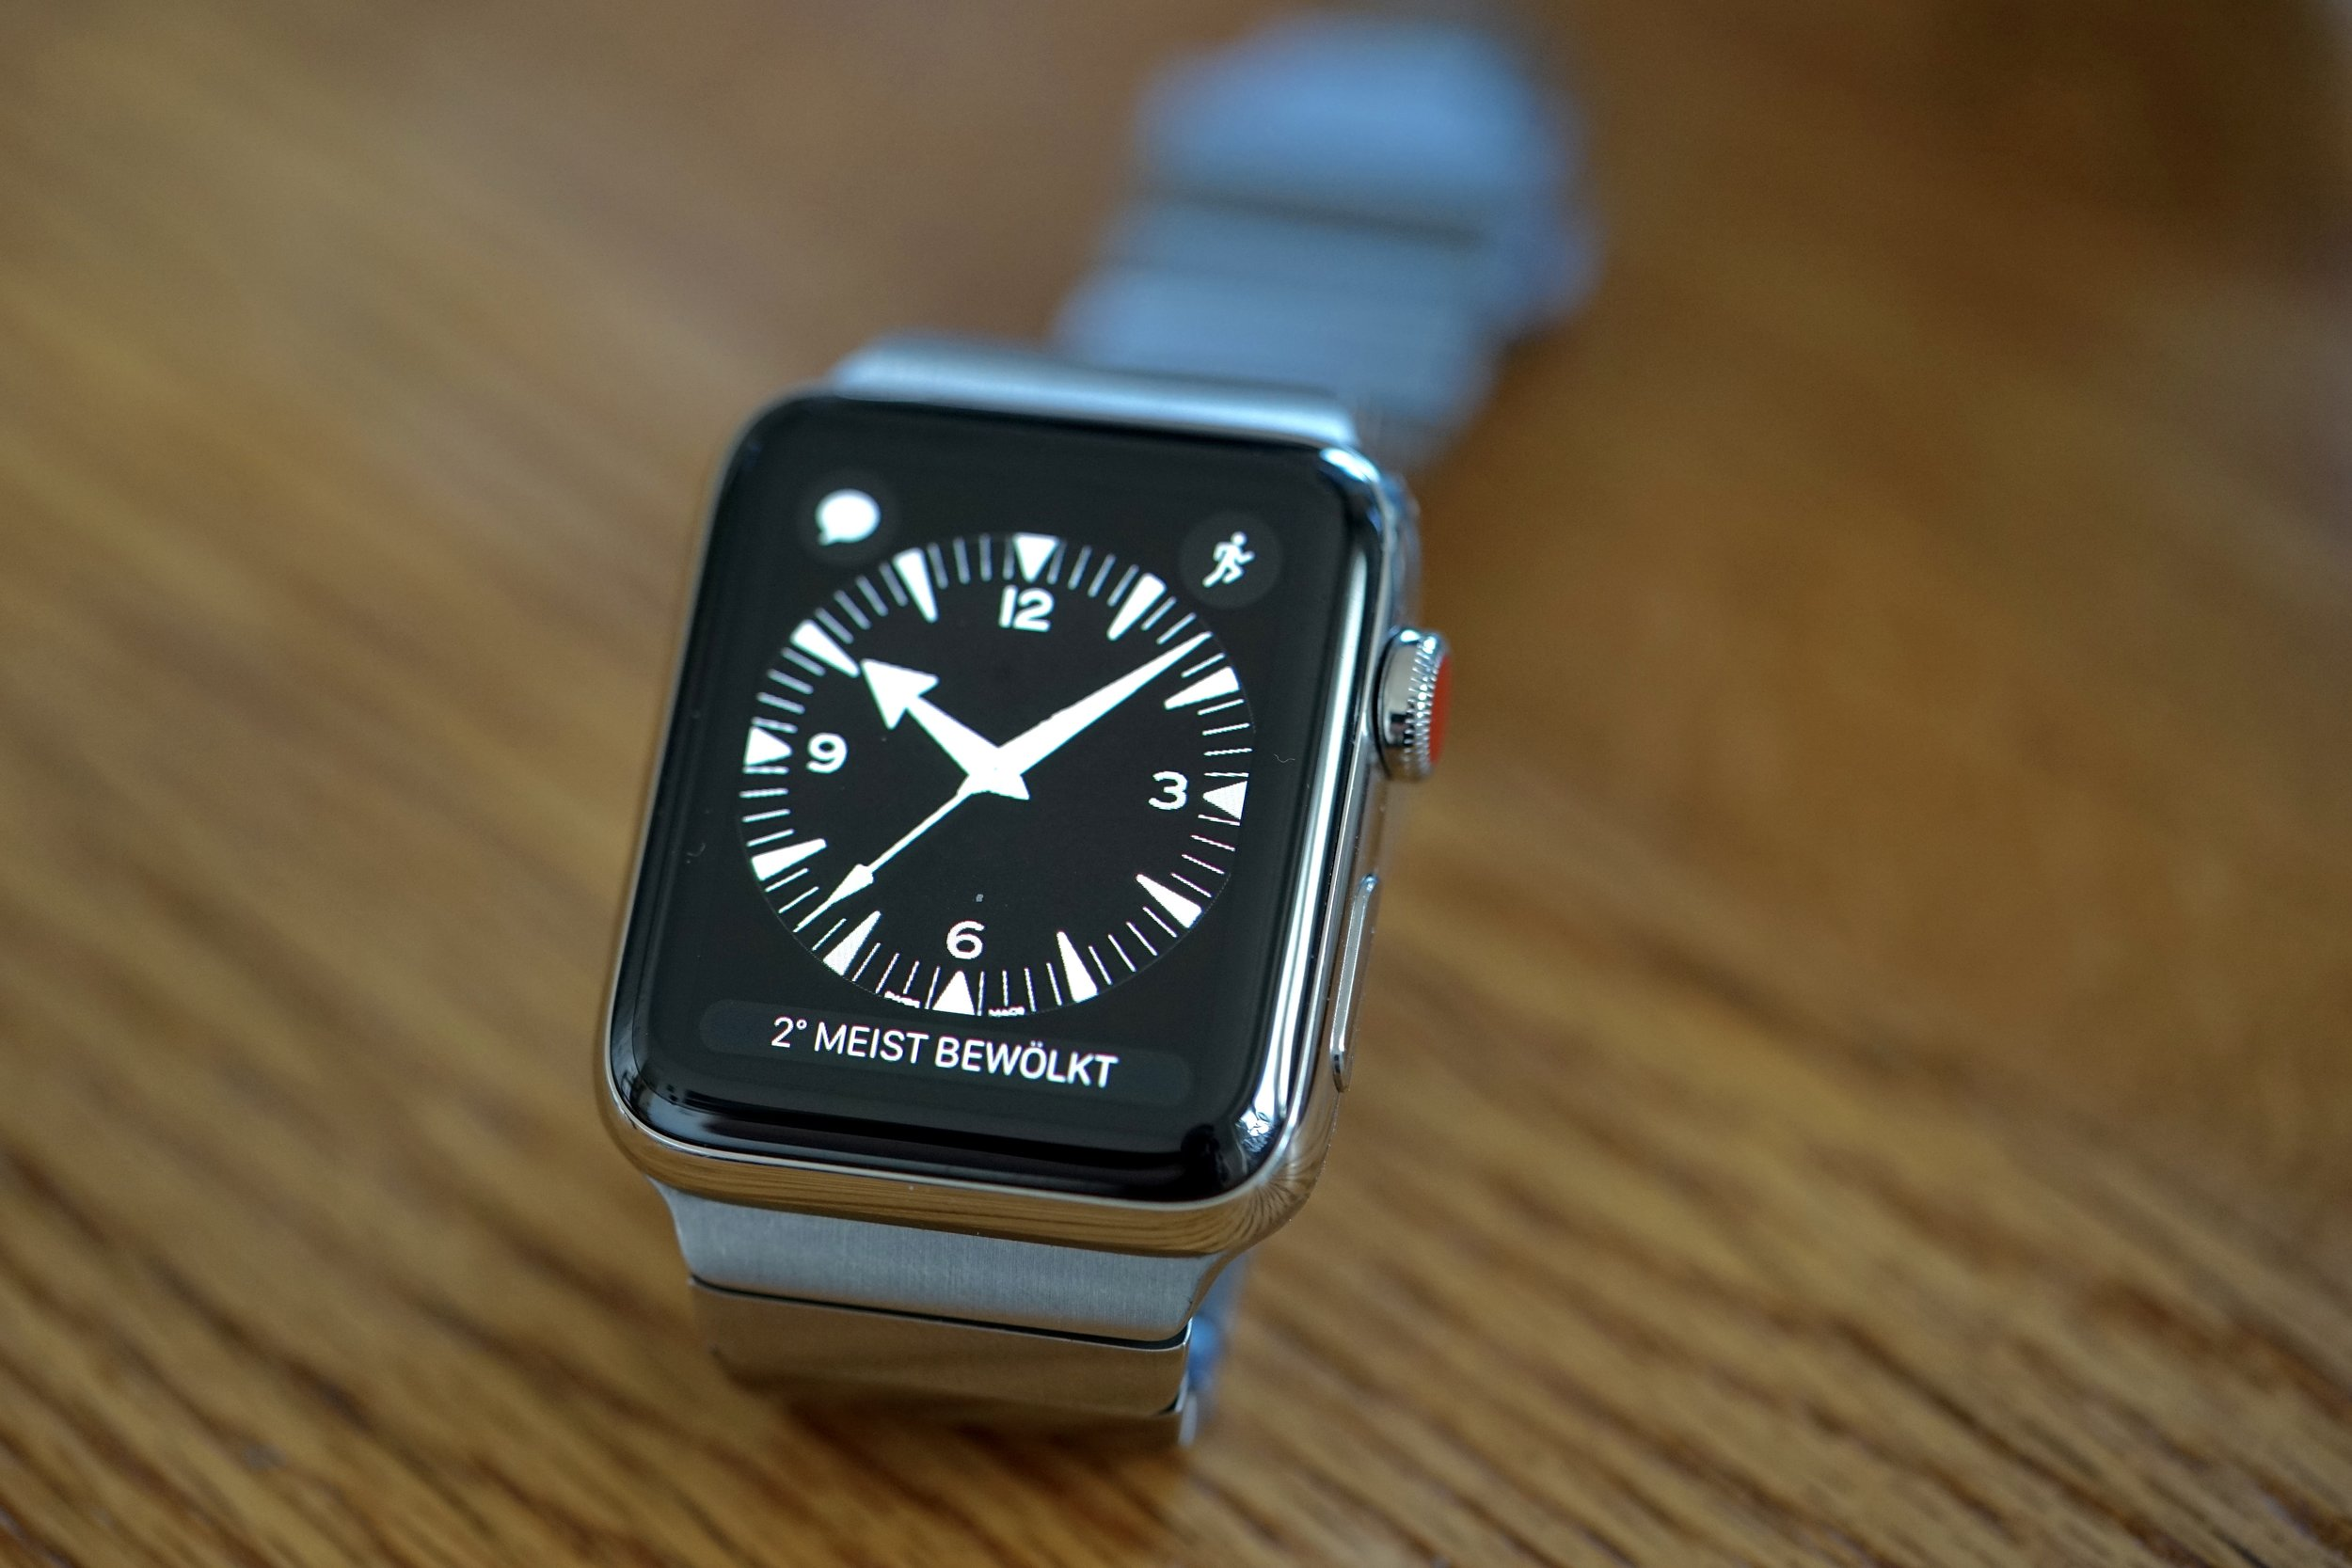 Third-party Watch Faces For Apple Watch